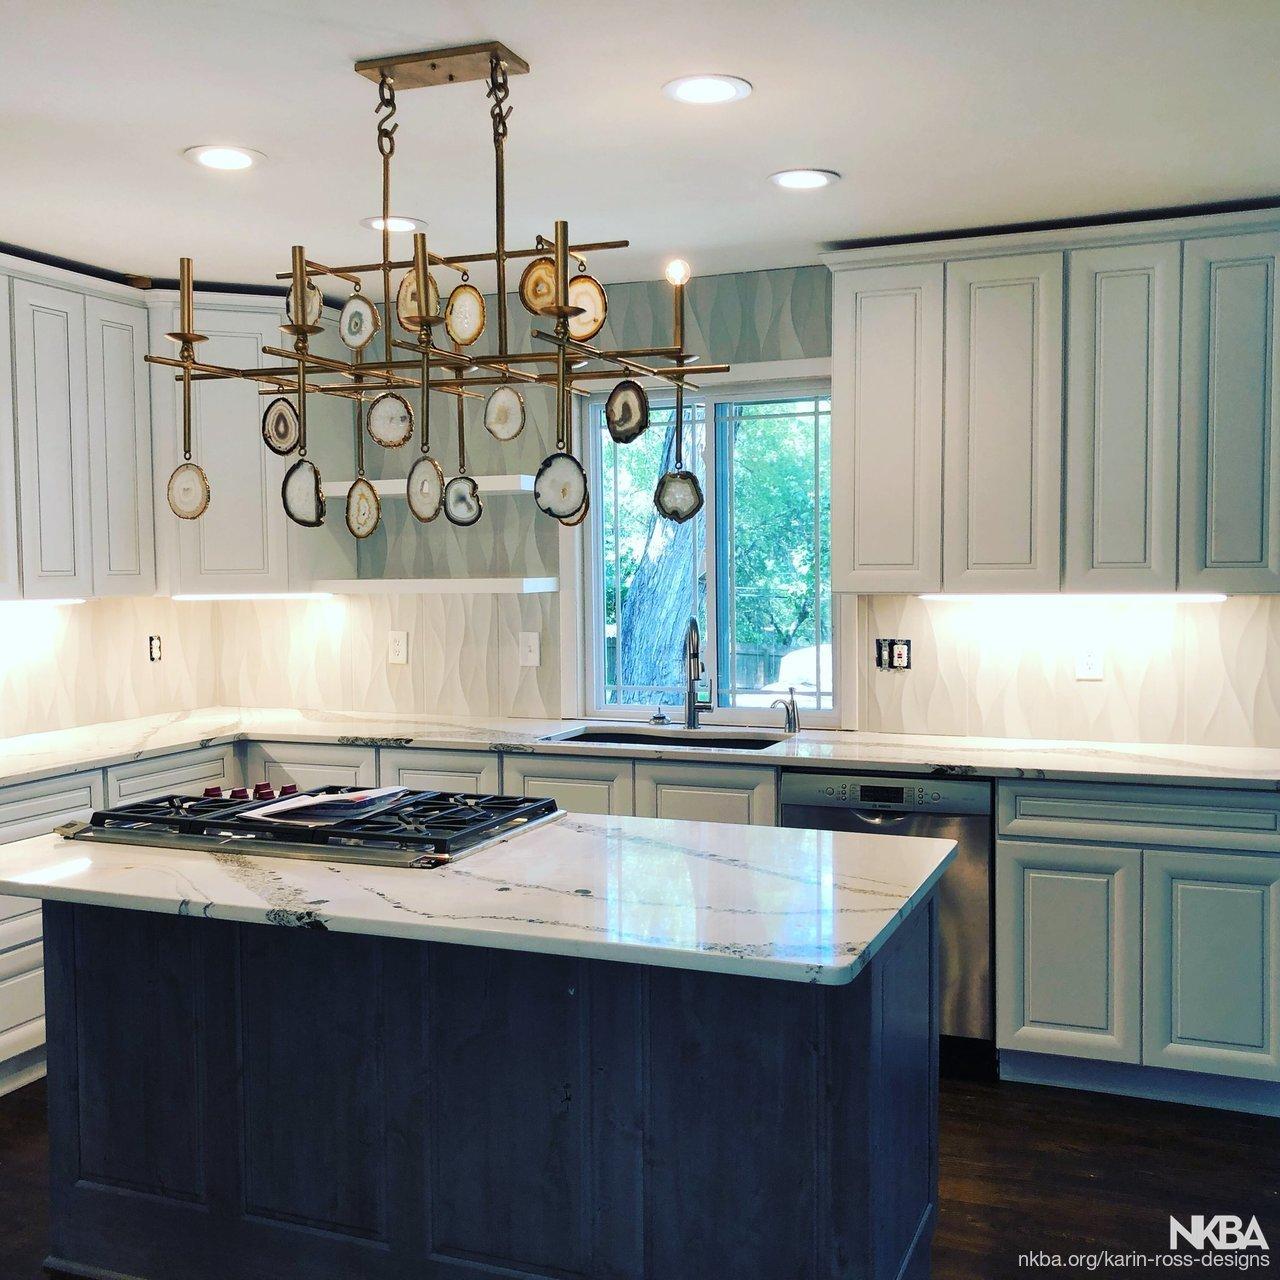 Another stunning kitchen is done by Karin Ross Designs - NKBA